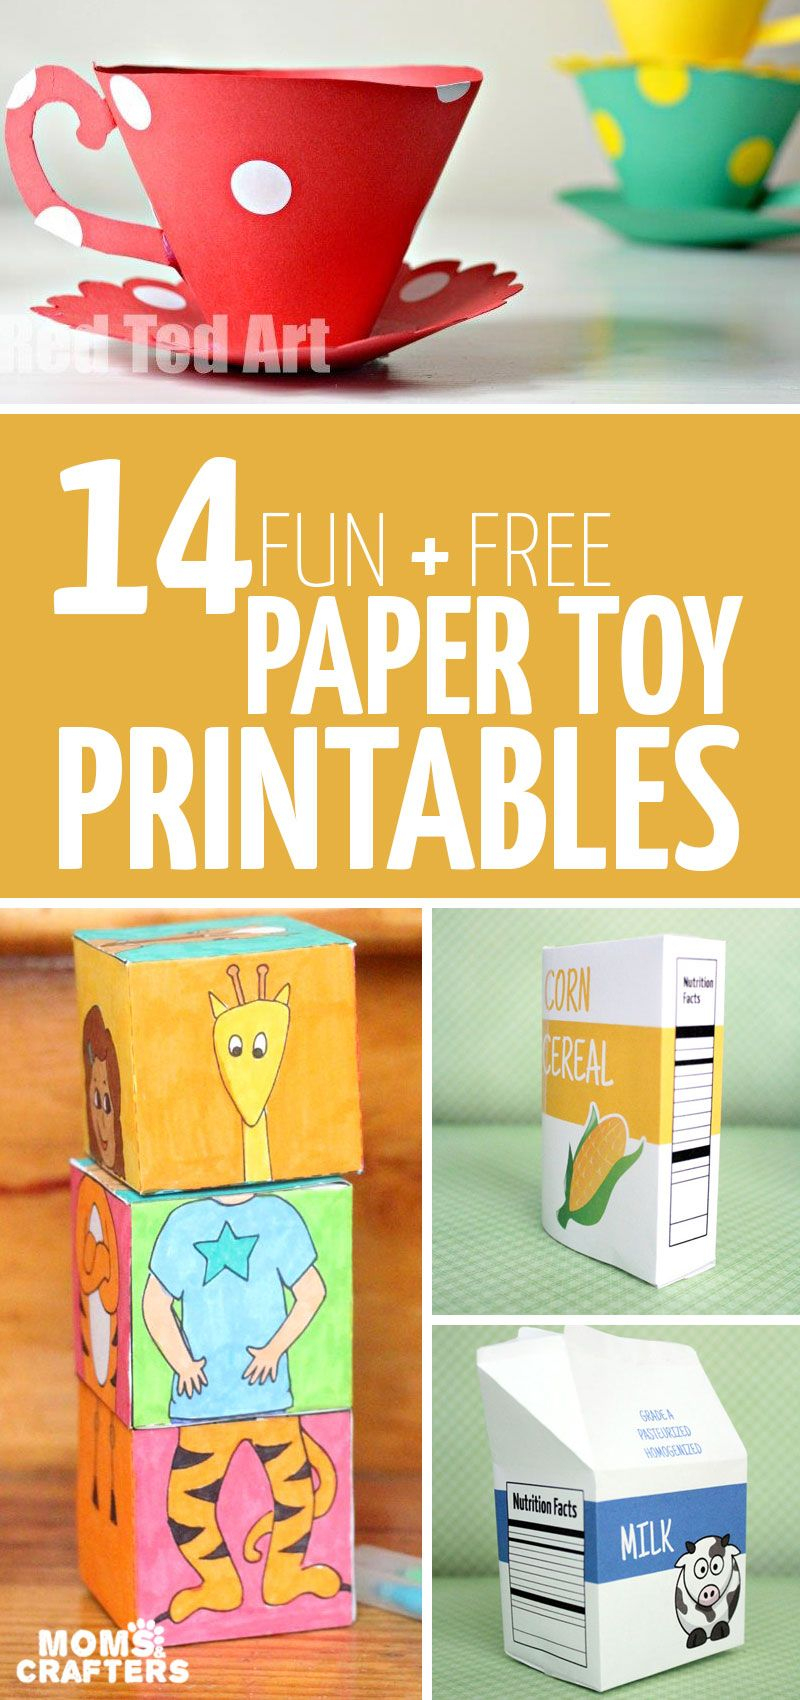 Paper Toy Templates - 14 Free Printables To Craft And Play! | Paper - Free Printable Paper Crafts